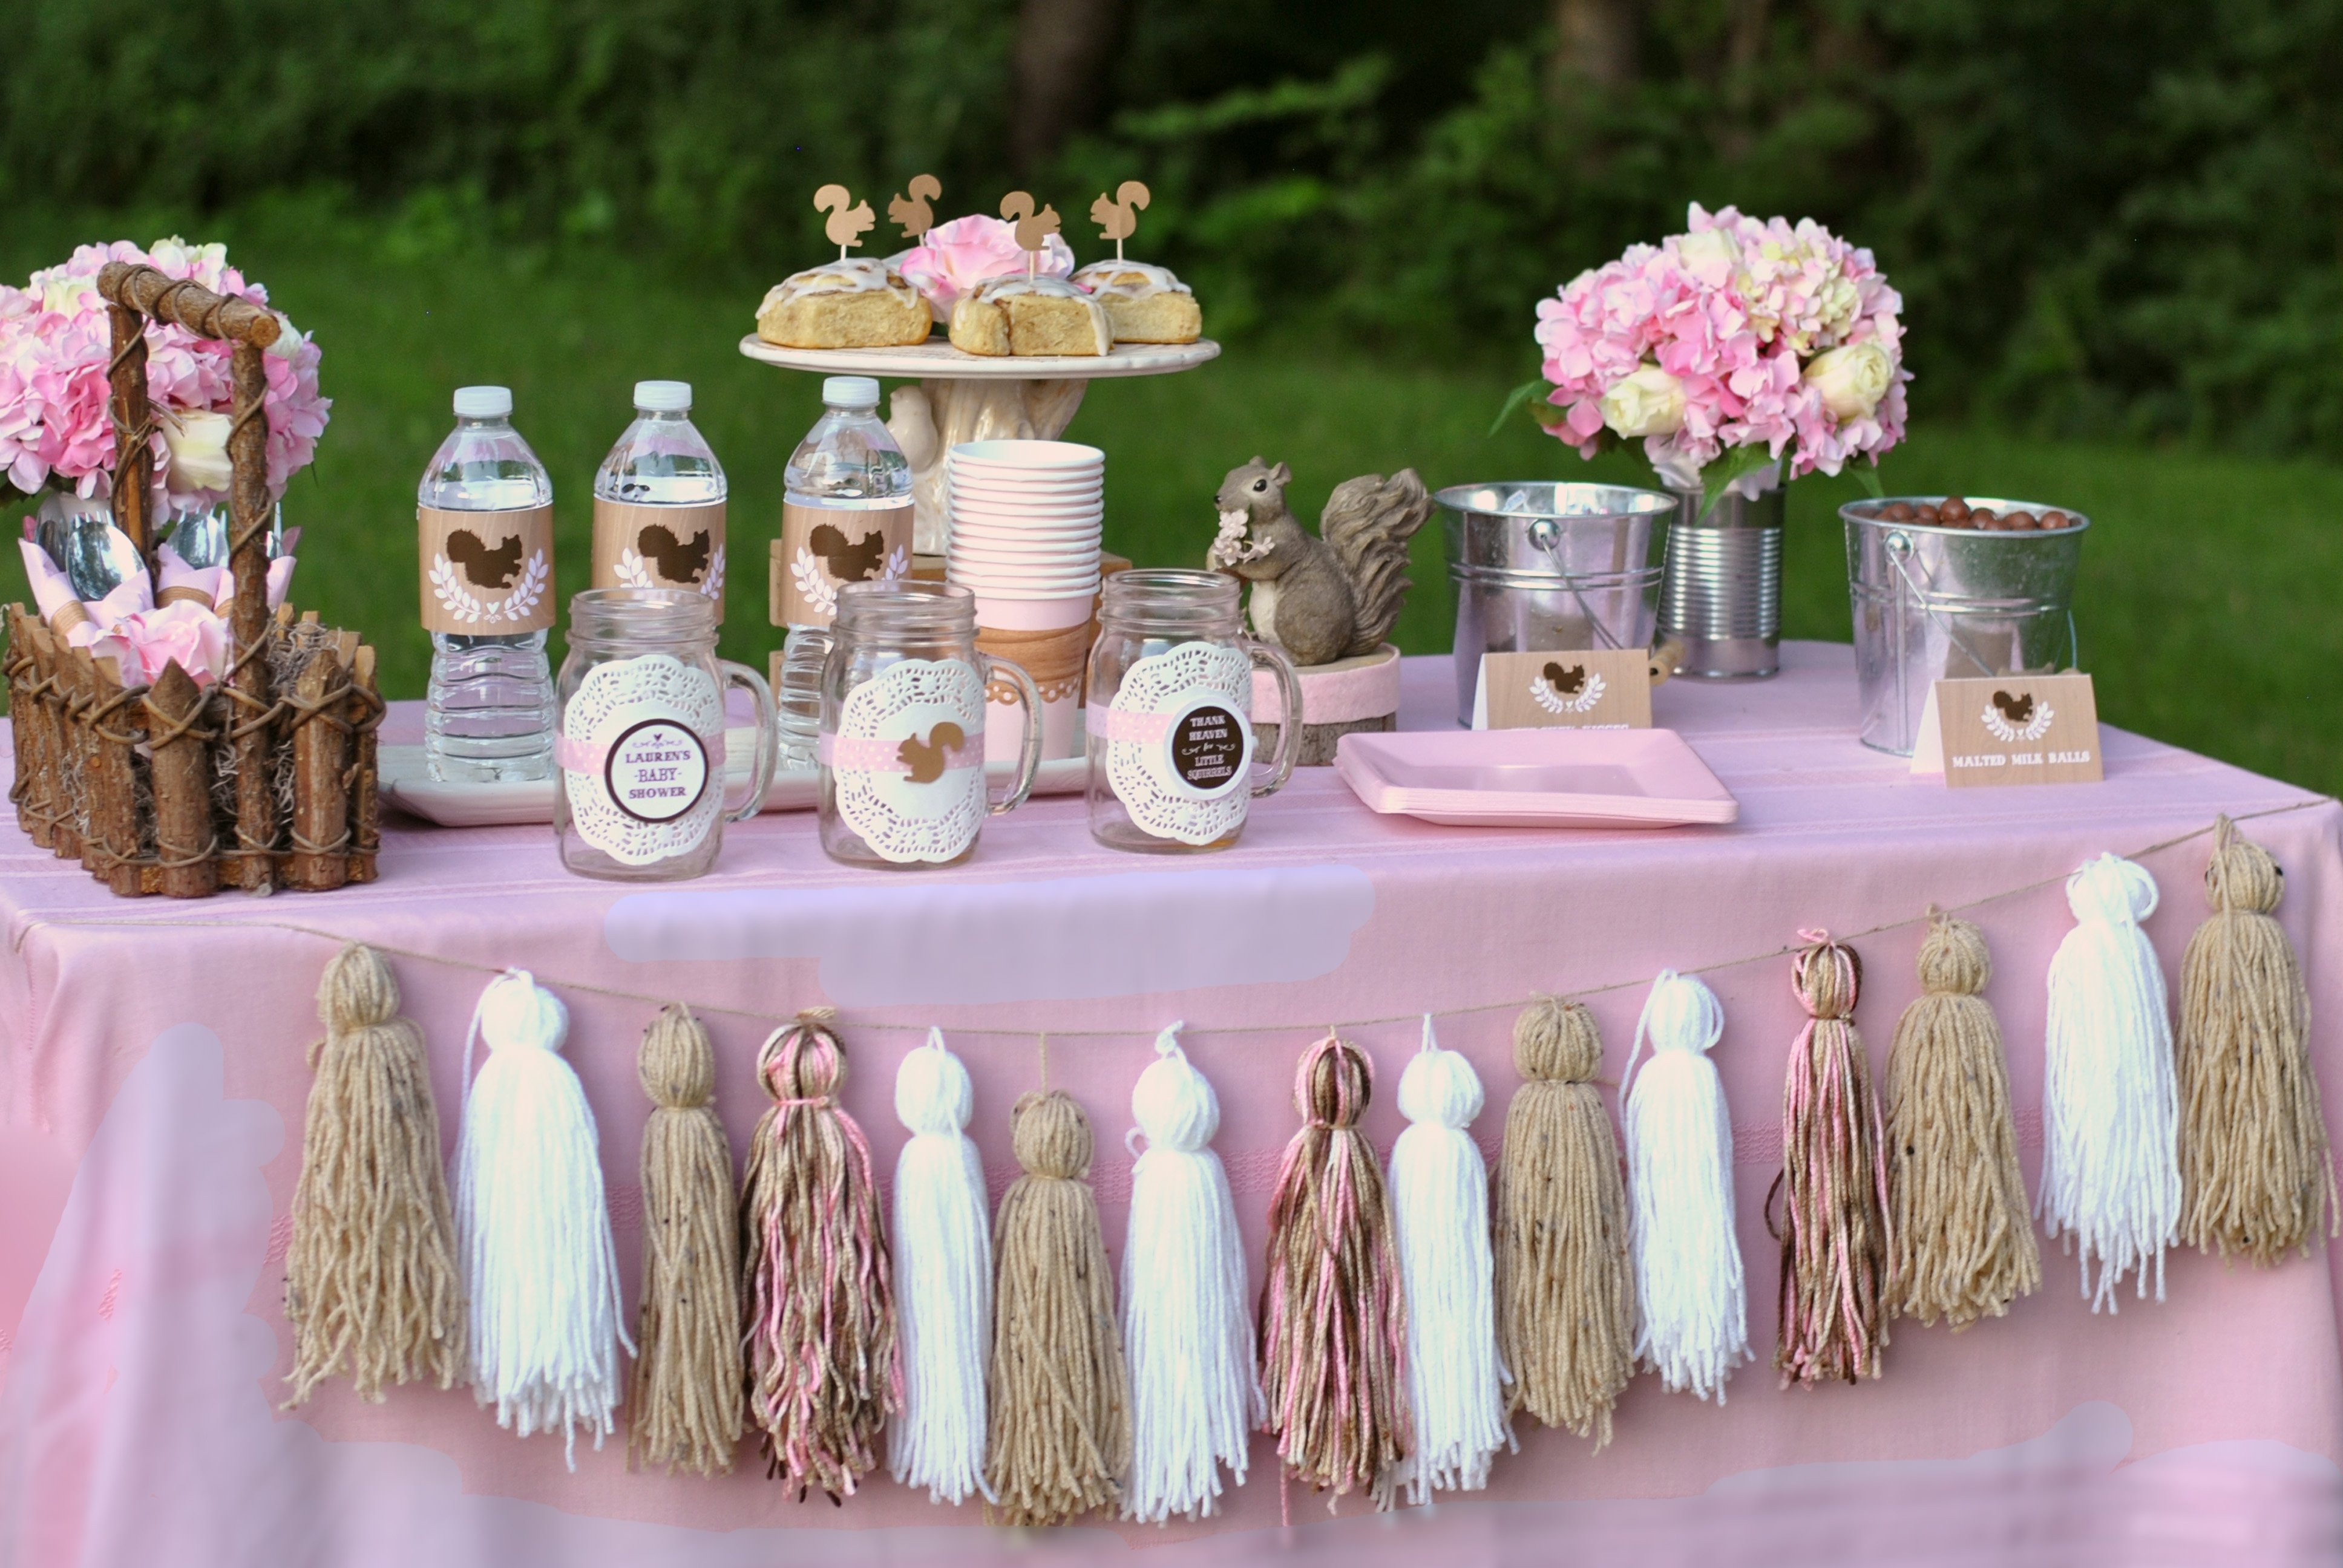 10 Famous Baby Shower Theme Ideas For A Girl baby shower theme ideas for girl omega center ideas for baby 6 2020